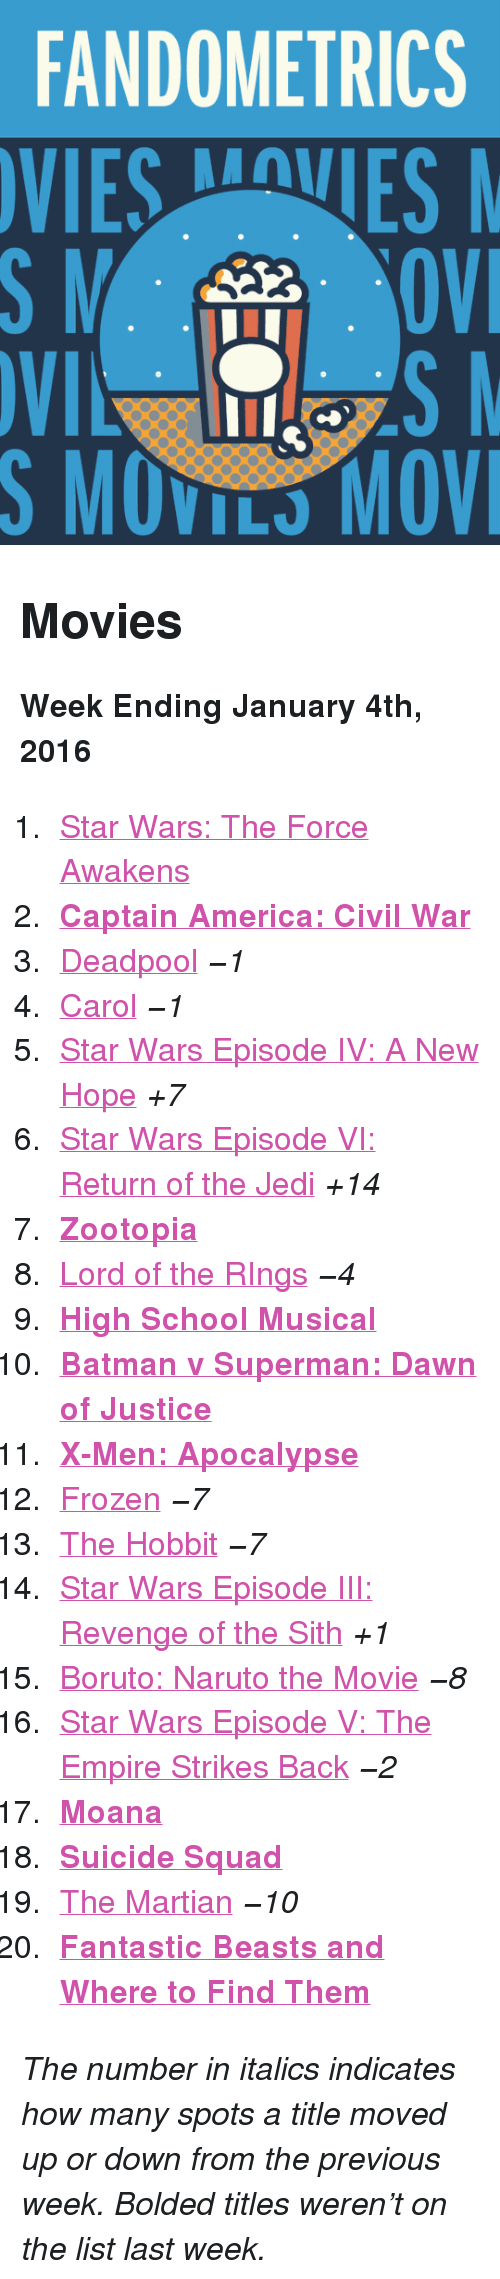 "moana: FANDOMETRICS  VIESVES  S MOVILS MOV <h2>Movies</h2><p><b>Week Ending January 4th, 2016</b></p><ol><li><a href=""http://www.tumblr.com/search/the%20force%20awakens"">Star Wars: The Force Awakens</a></li>  <li><a href=""http://www.tumblr.com/search/captain%20america%20civil%20war""><b>Captain America: Civil War</b></a></li>  <li><a href=""http://www.tumblr.com/search/deadpool"">Deadpool</a> <i>−1</i></li>  <li><a href=""http://www.tumblr.com/search/carol"">Carol</a> <i>−1</i></li>  <li><a href=""http://www.tumblr.com/search/a%20new%20hope"">Star Wars Episode IV: A New Hope</a> <i>+7</i></li>  <li><a href=""http://www.tumblr.com/search/return%20of%20the%20jedi"">Star Wars Episode VI: Return of the Jedi</a> <i>+14</i></li>  <li><a href=""http://www.tumblr.com/search/zootopia""><b>Zootopia</b></a></li>  <li><a href=""http://www.tumblr.com/search/lotr"">Lord of the RIngs</a> <i>−4</i></li>  <li><a href=""http://www.tumblr.com/search/high%20school%20musical""><b>High School Musical</b></a></li>  <li><a href=""http://www.tumblr.com/search/batman%20v%20superman""><b>Batman v Superman: Dawn of Justice</b></a></li>  <li><a href=""http://www.tumblr.com/search/x-men""><b>X-Men: Apocalypse</b></a></li>  <li><a href=""http://www.tumblr.com/search/frozen"">Frozen</a> <i>−7</i></li>  <li><a href=""http://www.tumblr.com/search/the%20hobbit"">The Hobbit</a> <i>−7</i></li>  <li><a href=""http://www.tumblr.com/search/revenge%20of%20the%20sith"">Star Wars Episode III: Revenge of the Sith</a> <i>+1</i></li>  <li><a href=""http://www.tumblr.com/search/boruto%20the%20movie"">Boruto: Naruto the Movie</a> <i>−8</i></li>  <li><a href=""http://www.tumblr.com/search/the%20empire%20strikes%20back"">Star Wars Episode V: The Empire Strikes Back</a> <i>−2</i></li>  <li><a href=""http://www.tumblr.com/search/moana""><b>Moana</b></a></li>  <li><a href=""http://www.tumblr.com/search/suicide%20squad""><b>Suicide Squad</b></a></li>  <li><a href=""http://www.tumblr.com/search/the%20martian"">The Martian</a> <i>−10</i></li>  <li><a href=""http://www.tumblr.com/search/fantastic%20beasts%20and%20where%20to%20find%20them""><b>Fantastic Beasts and Where to Find Them</b></a></li></ol><p><i>The number in italics indicates how many spots a title moved up or down from the previous week. Bolded titles weren't on the list last week.</i></p>"